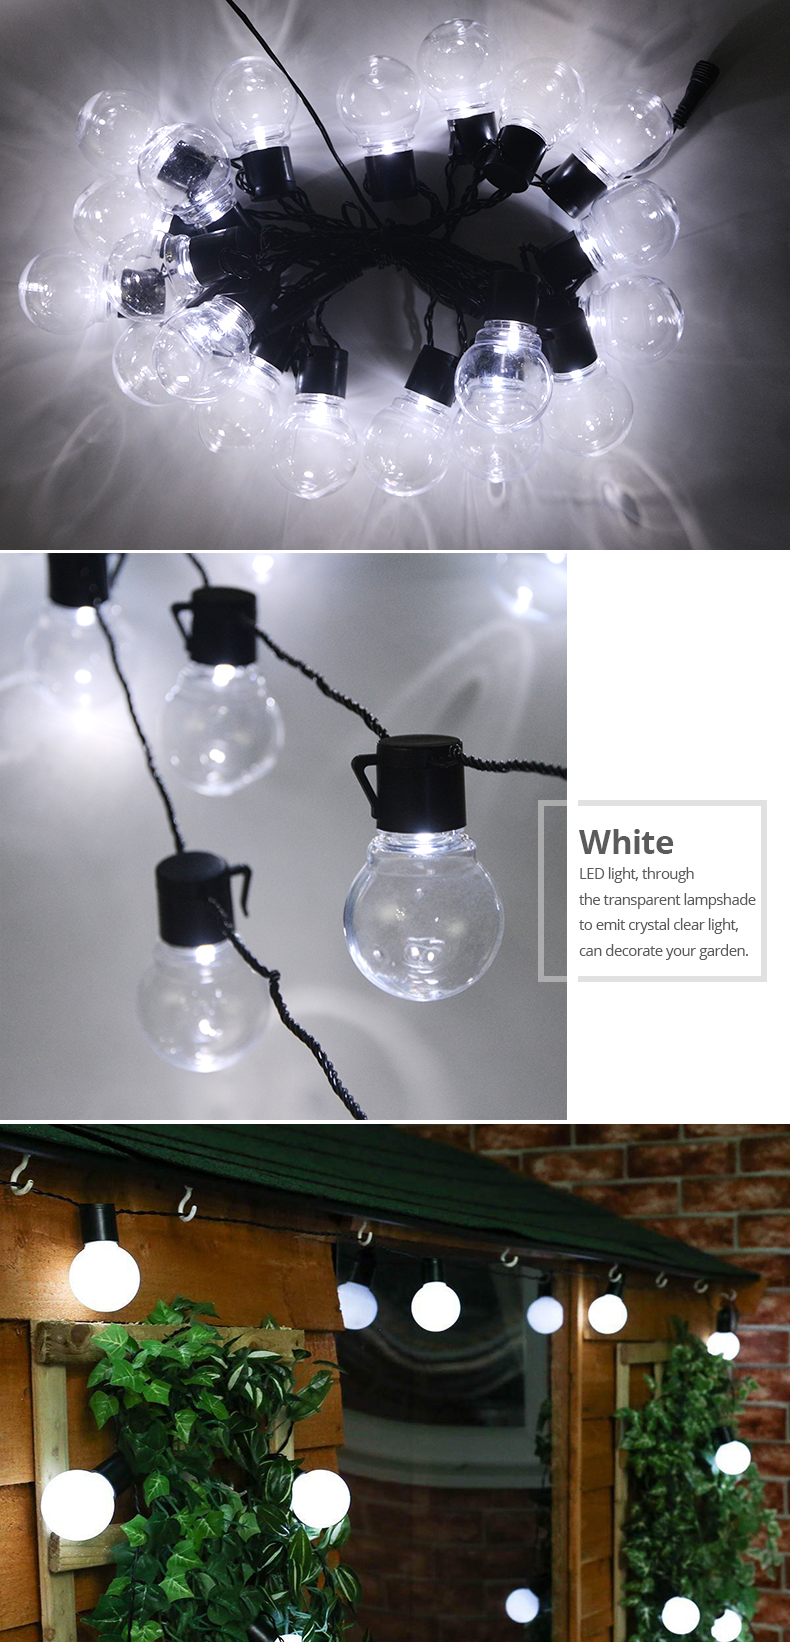 HTB1WraFXinrK1RjSsziq6xptpXa1 - Christmas Decorations for Home Fairy Lights Outdoor Indoor Led String light Party Weeding Adornos Navidad Natal Ornaments Decor